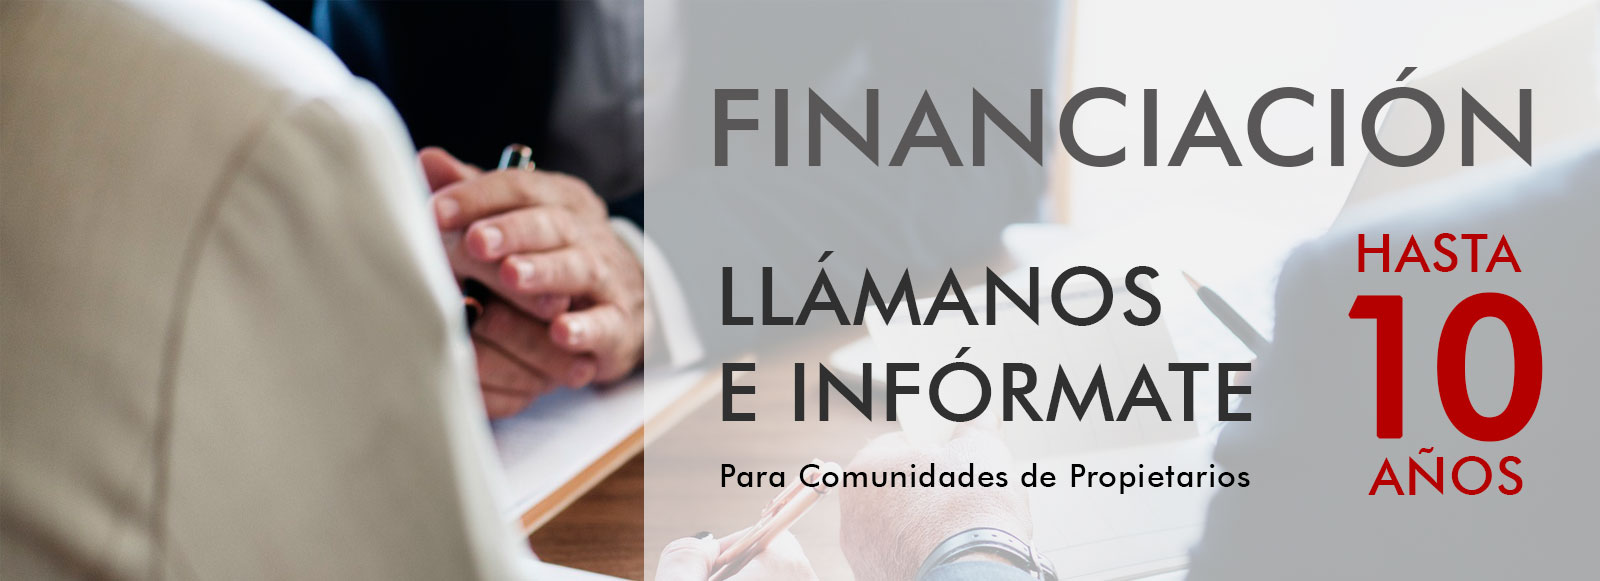 financiacion para comunidad de propietarios